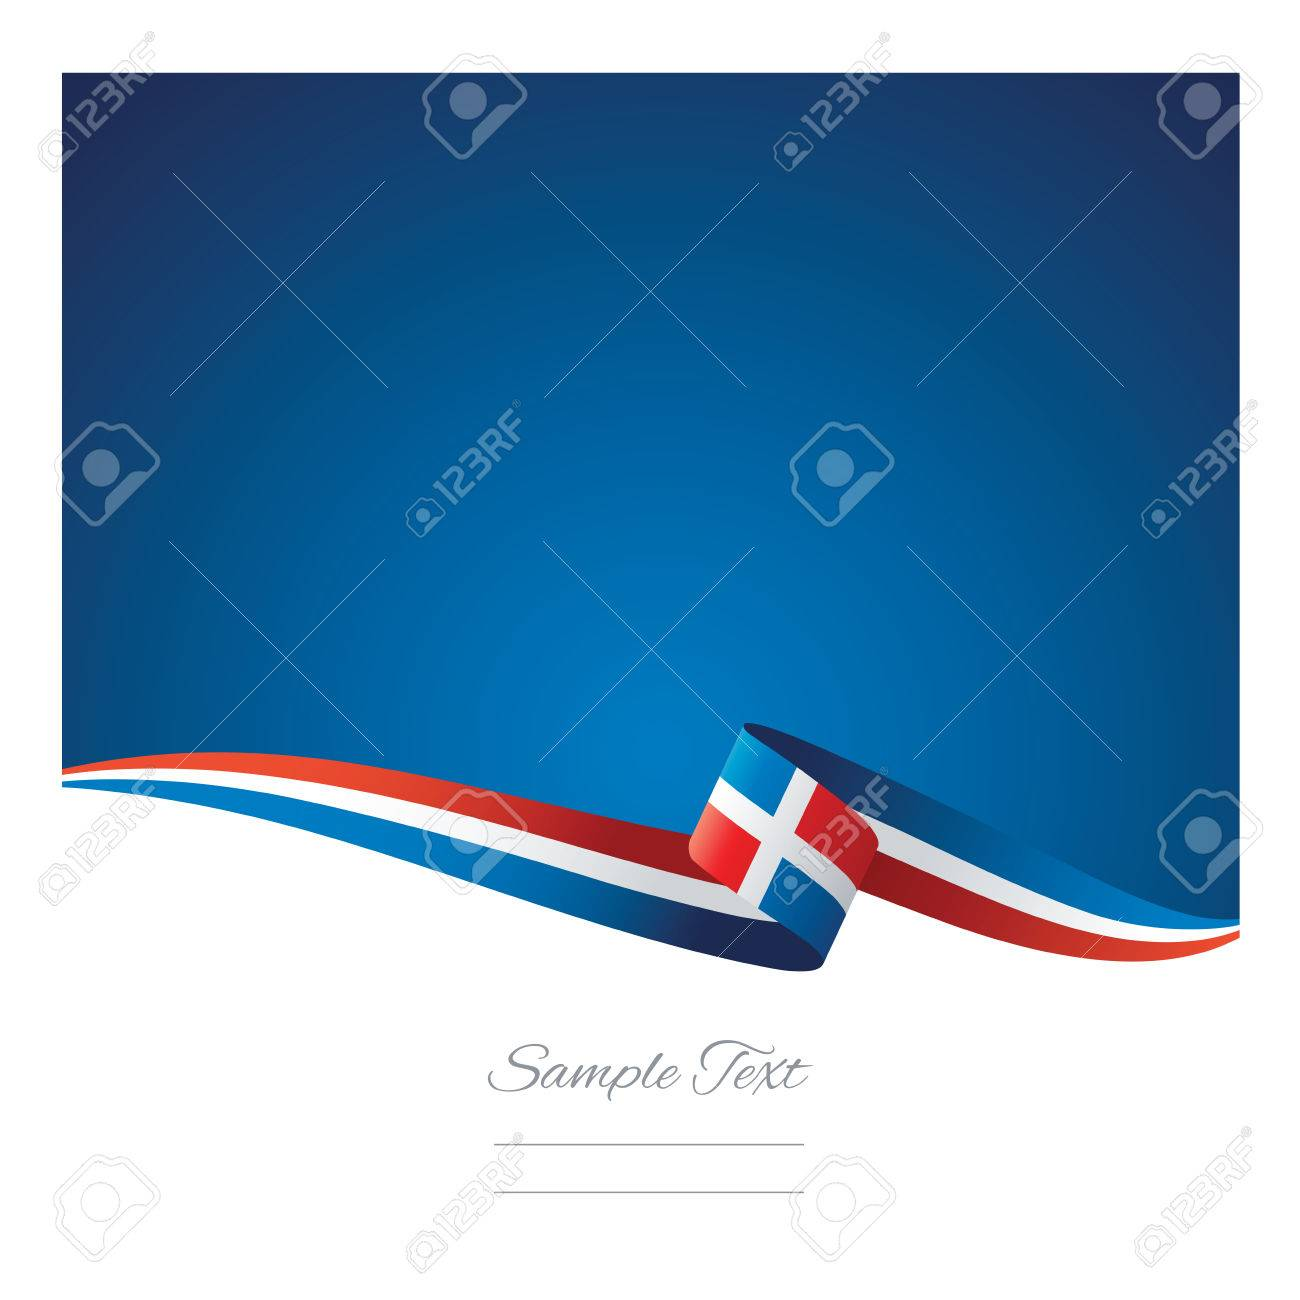 dominican flag images u0026 stock pictures royalty free dominican